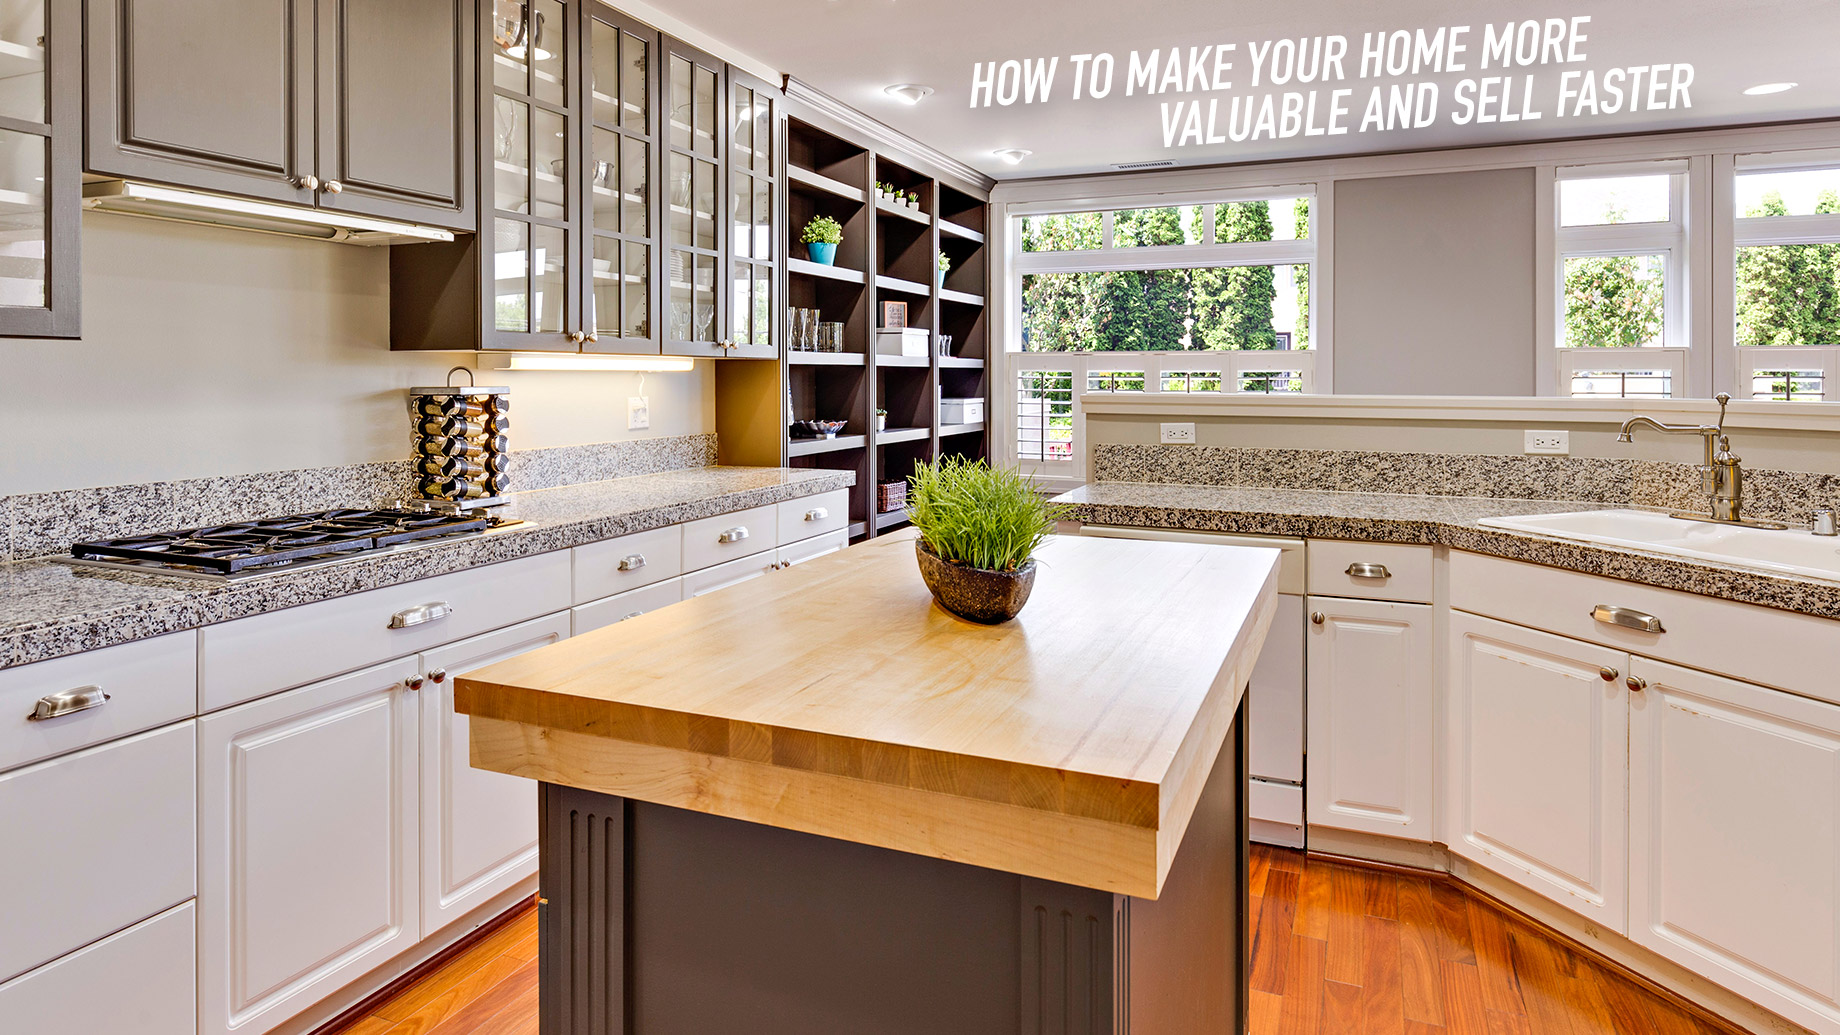 How to Make Your Home More Valuable and Sell Faster